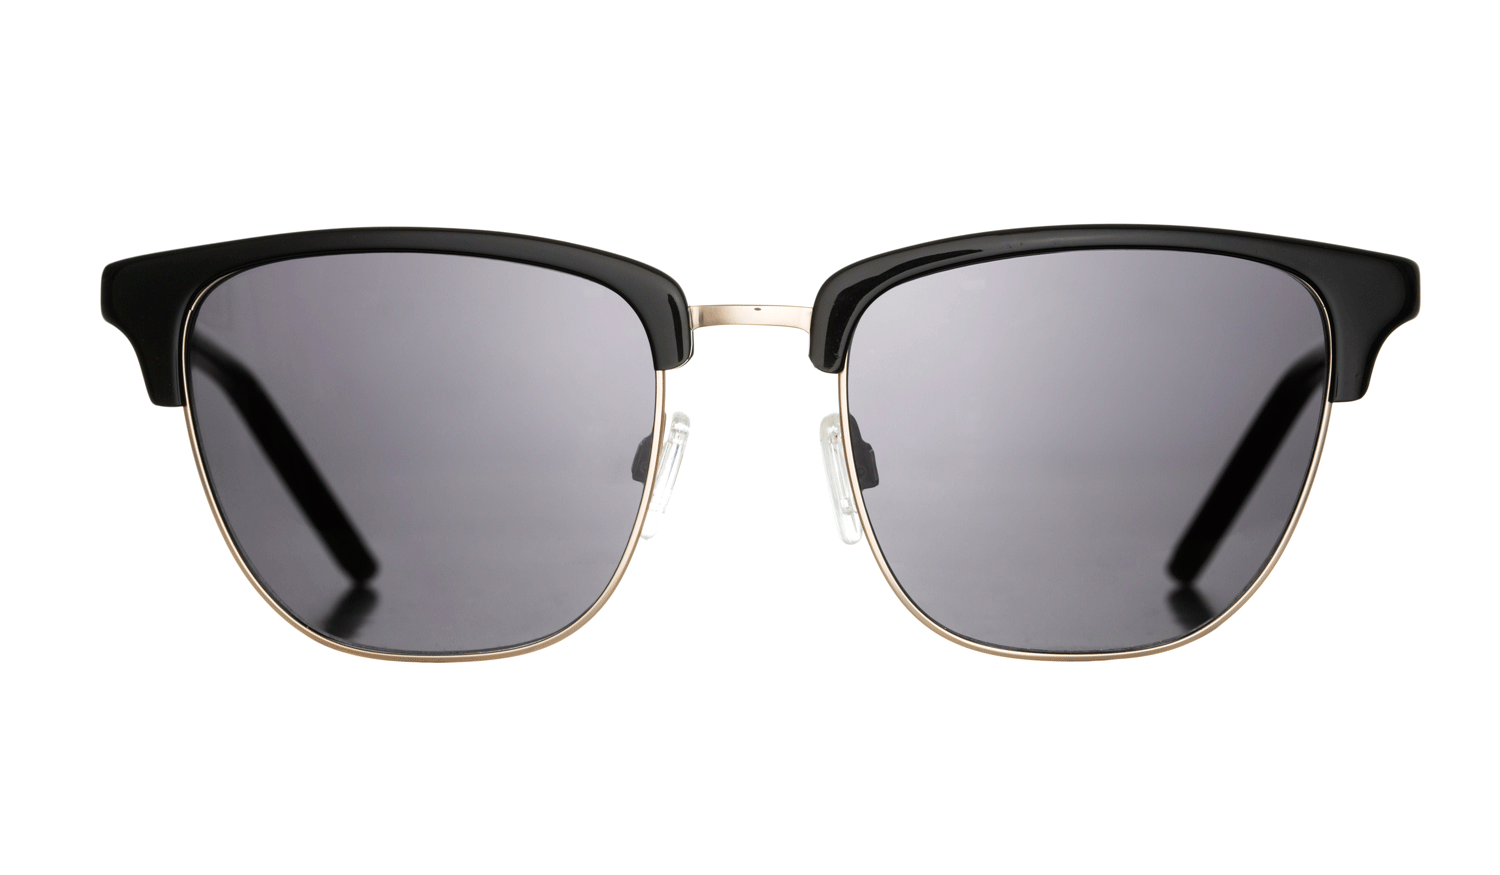 Jack Sunglasses - Black and Gold